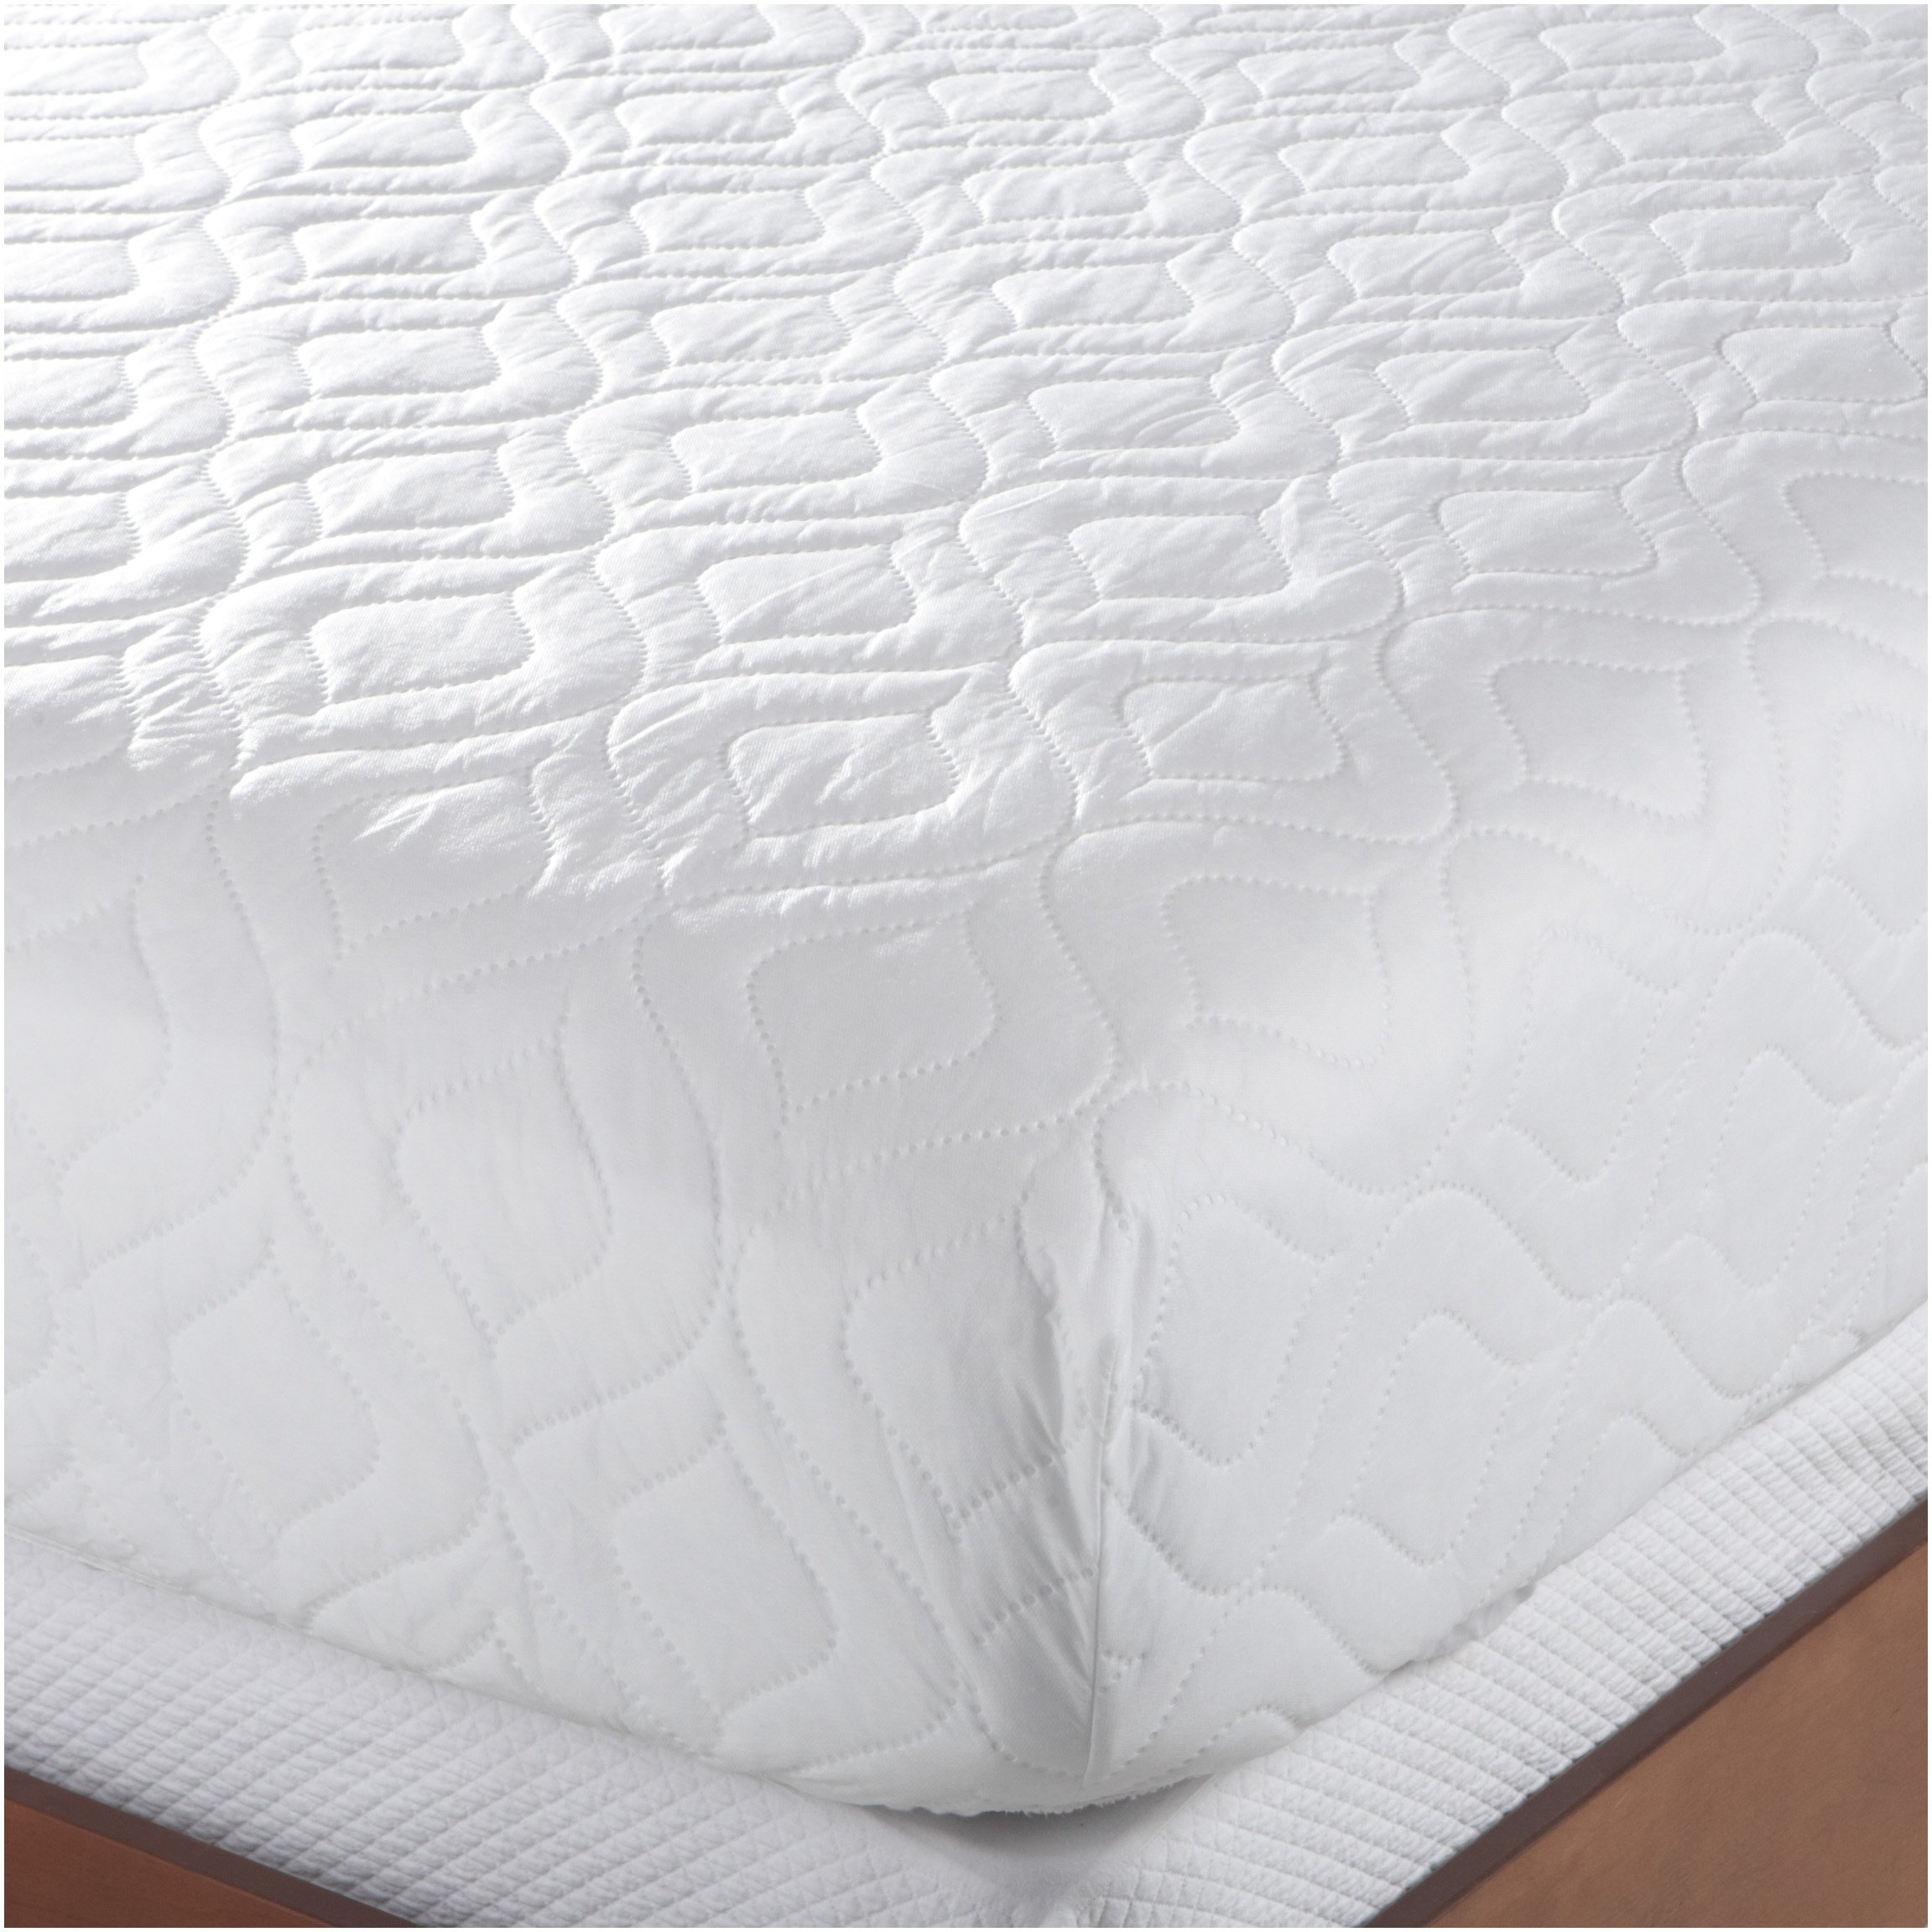 bed mattress pad cover queen size white protector pillow top topper quilted soft. Black Bedroom Furniture Sets. Home Design Ideas